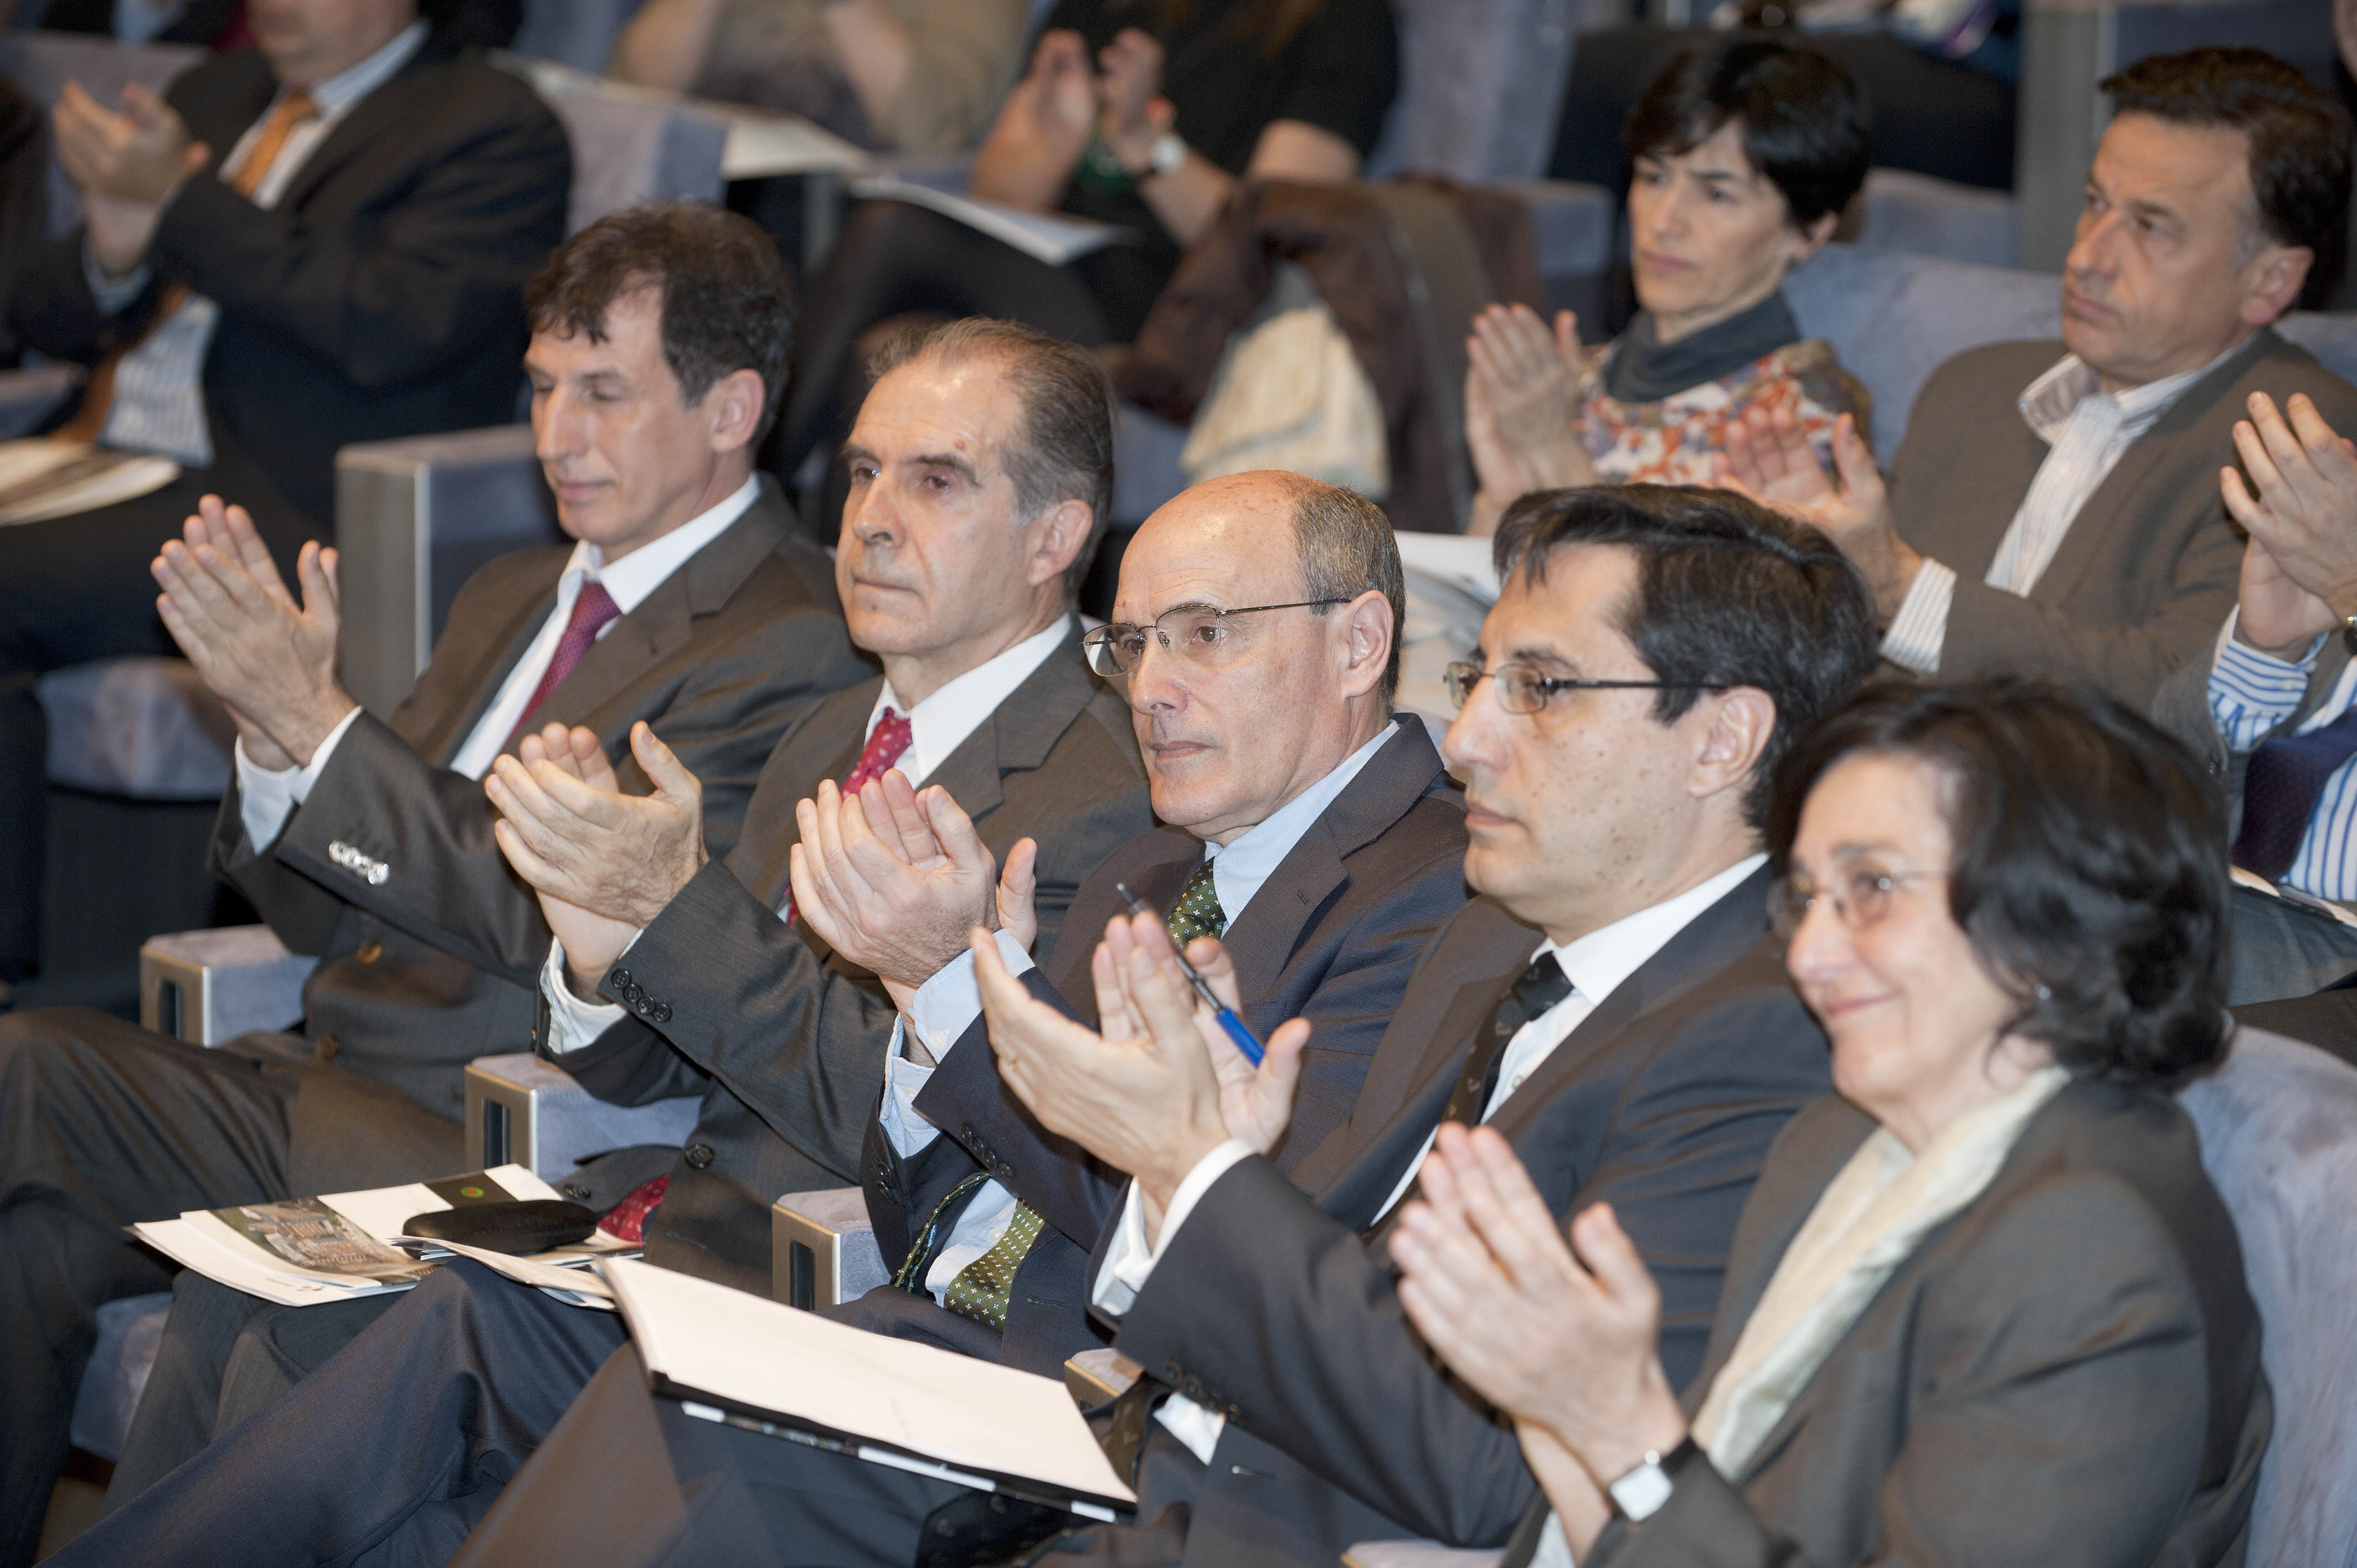 2012_03_28_bengoa_instituto_biocruces_05.jpg